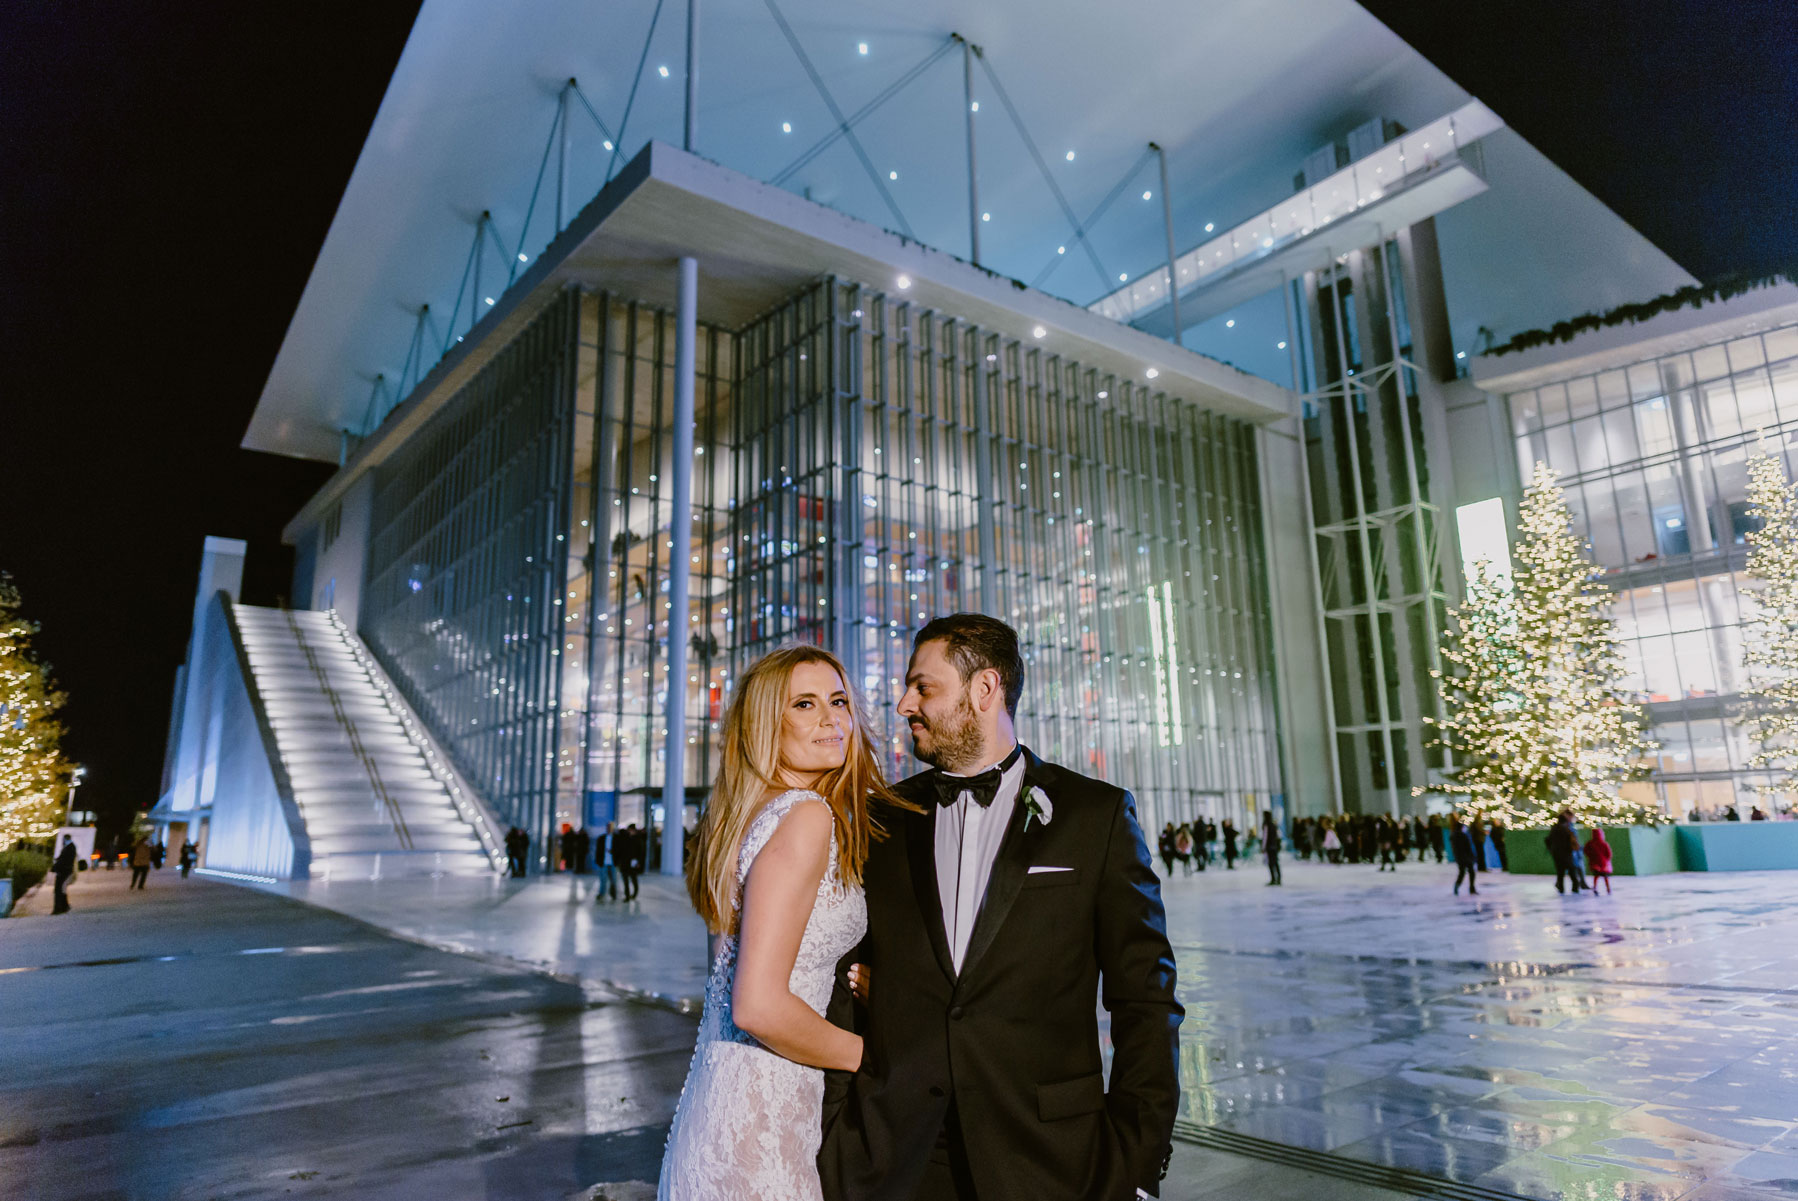 Thanos Ioanna wedding - Stavros Niarchos Foundation